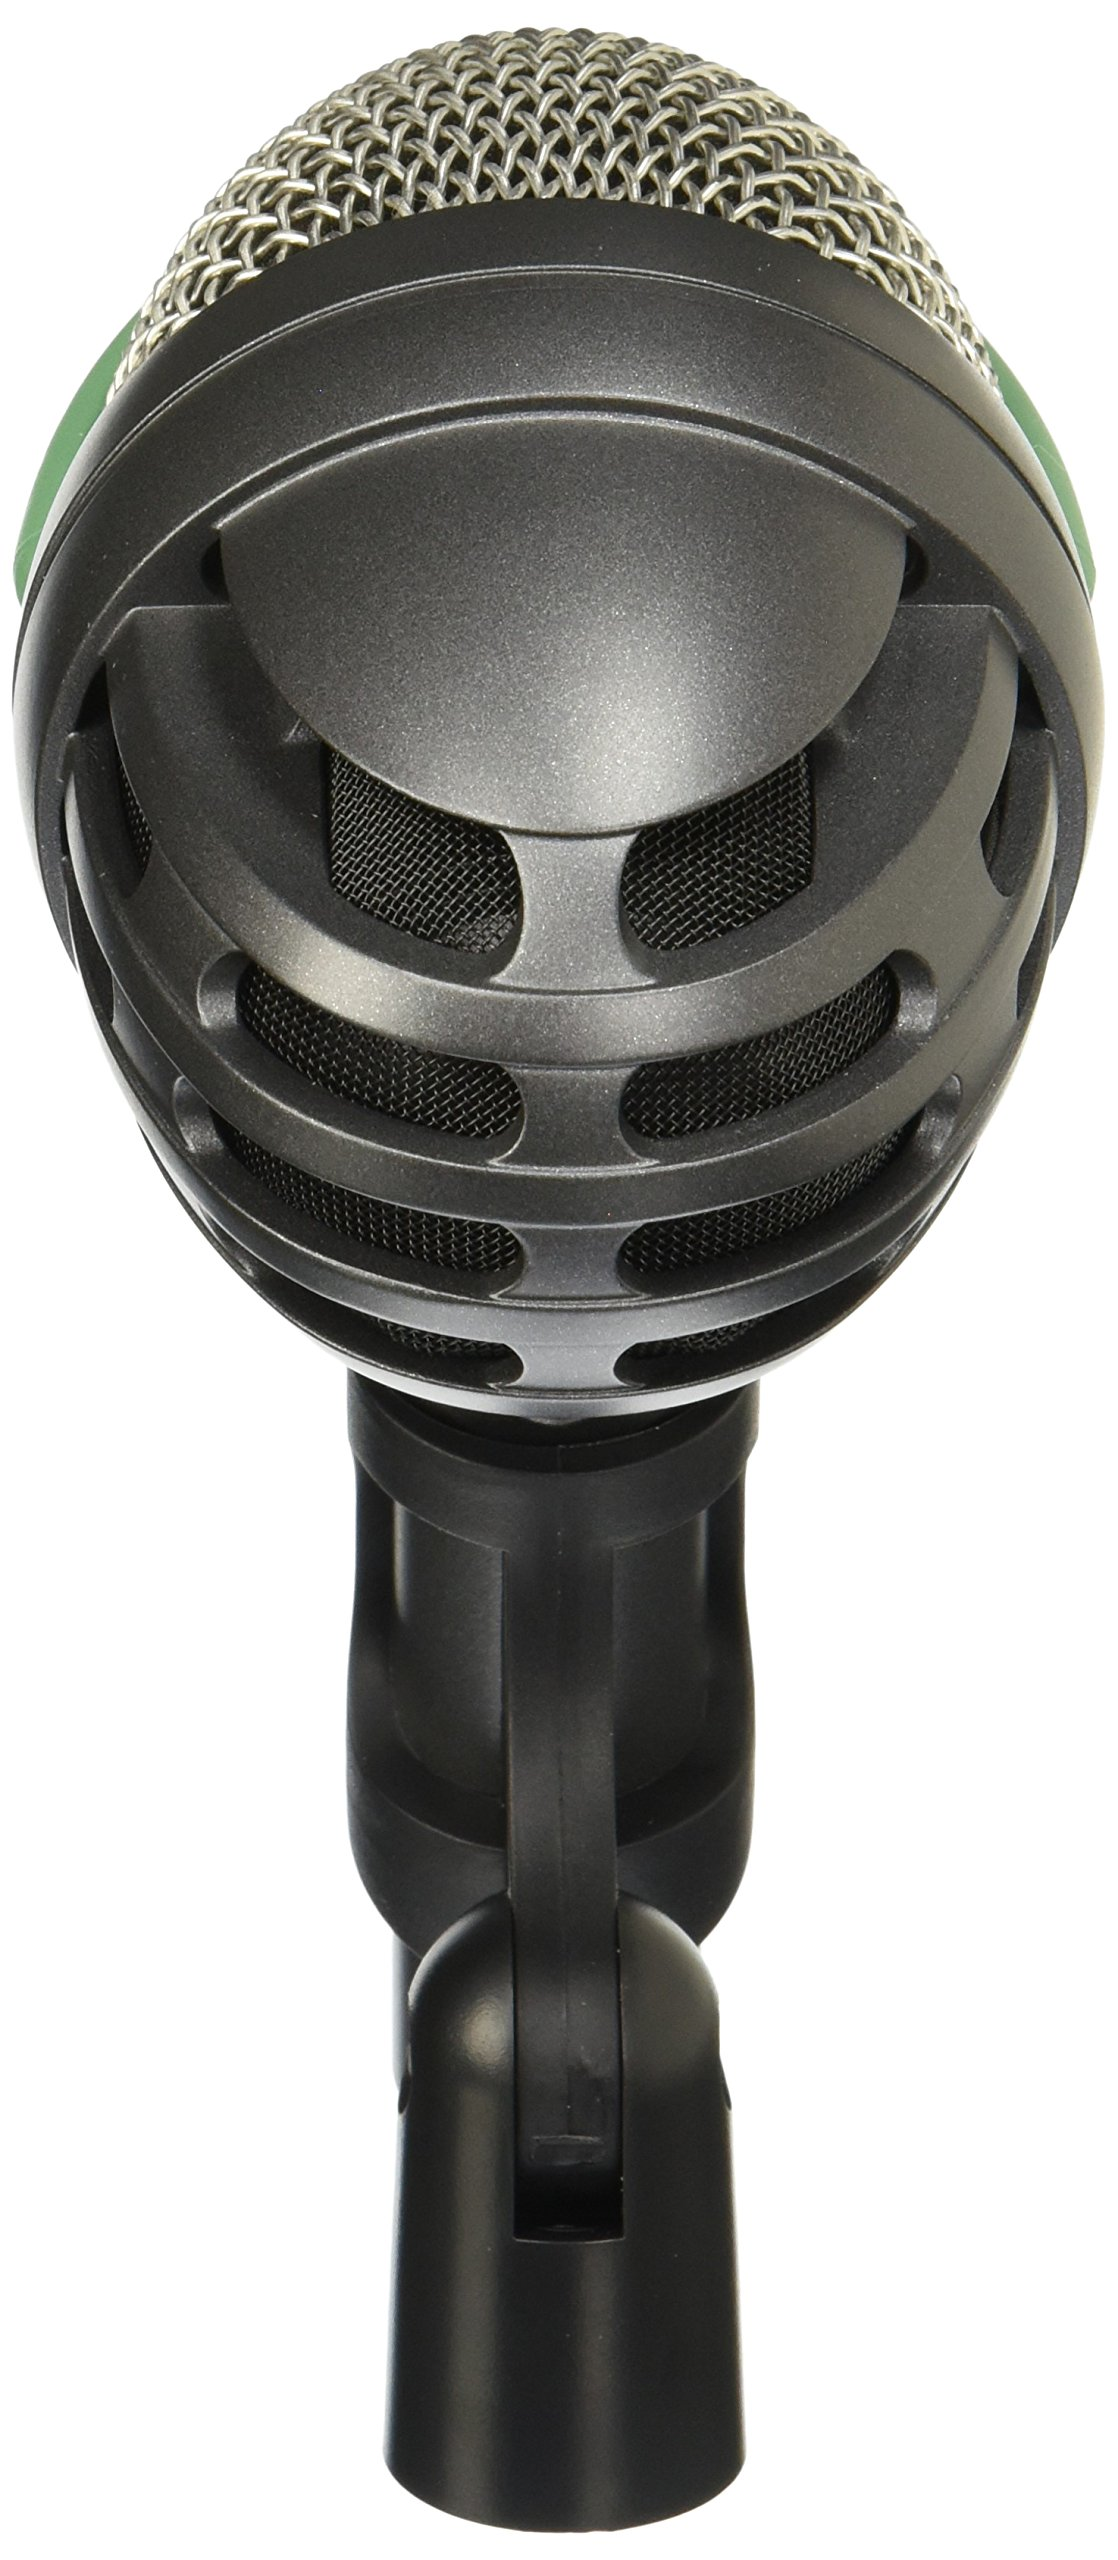 AKG D112 MkII Professional Bass Drum Microphone by AKG